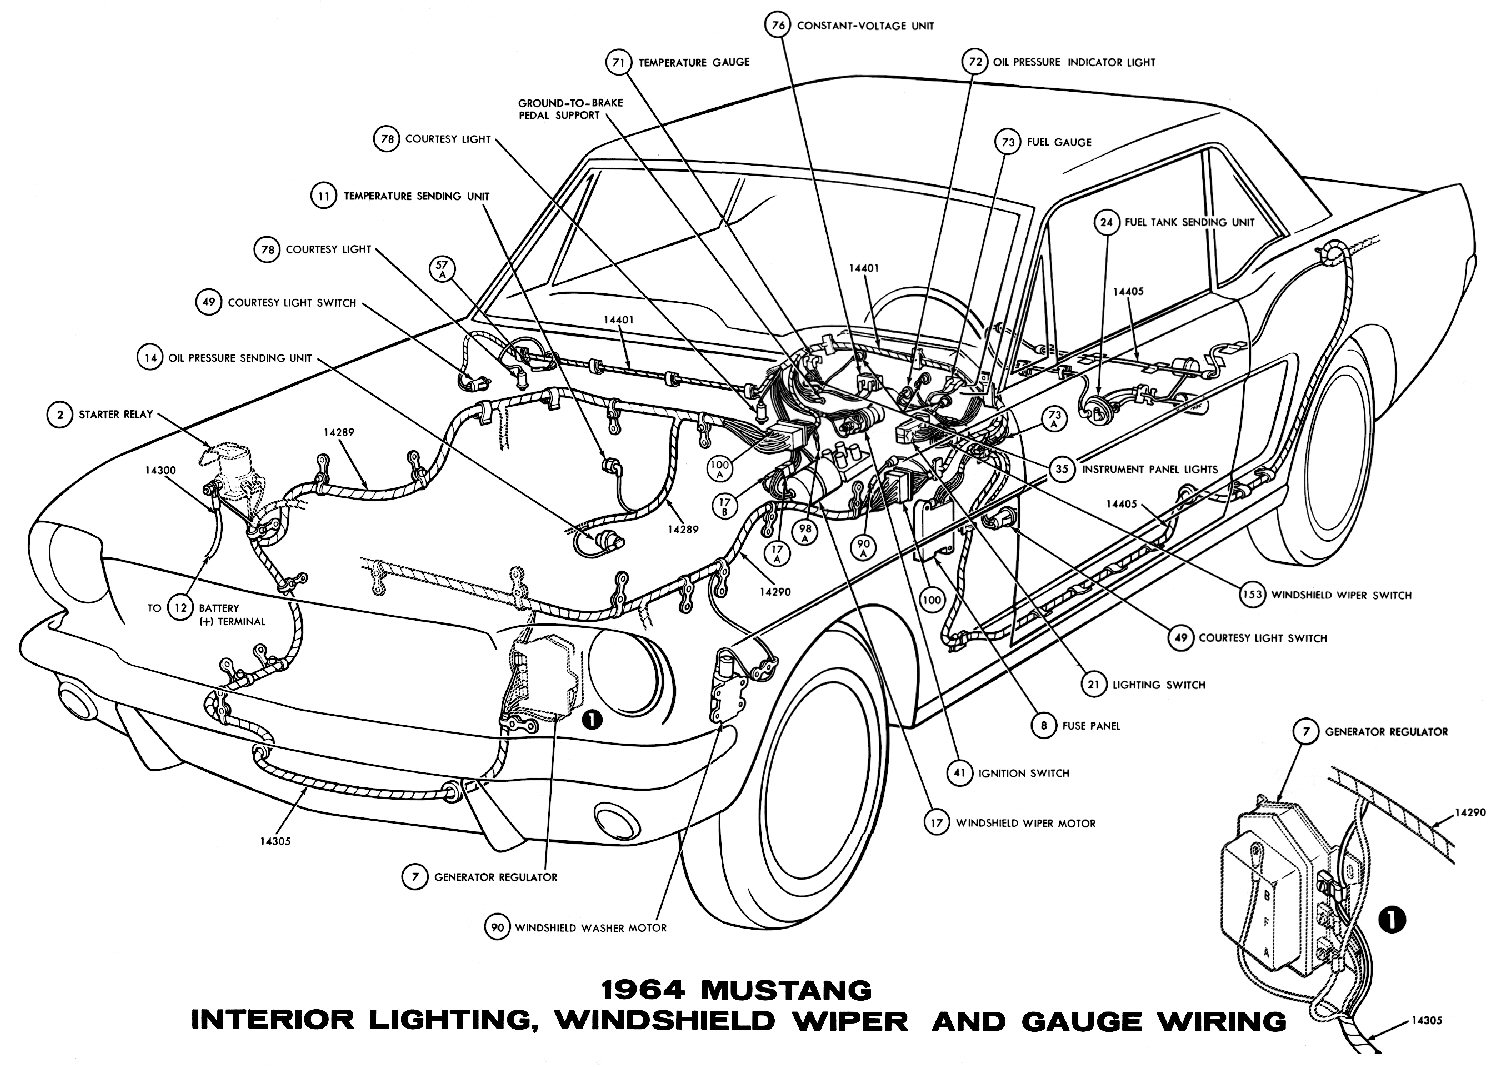 1964 Mustang Wiring Diagrams Average Joe Restoration 1968 Dash Cluster Diagram Sm1964j Interior Lights Windshield Wiper And Gauges Pictorial Or Schematic